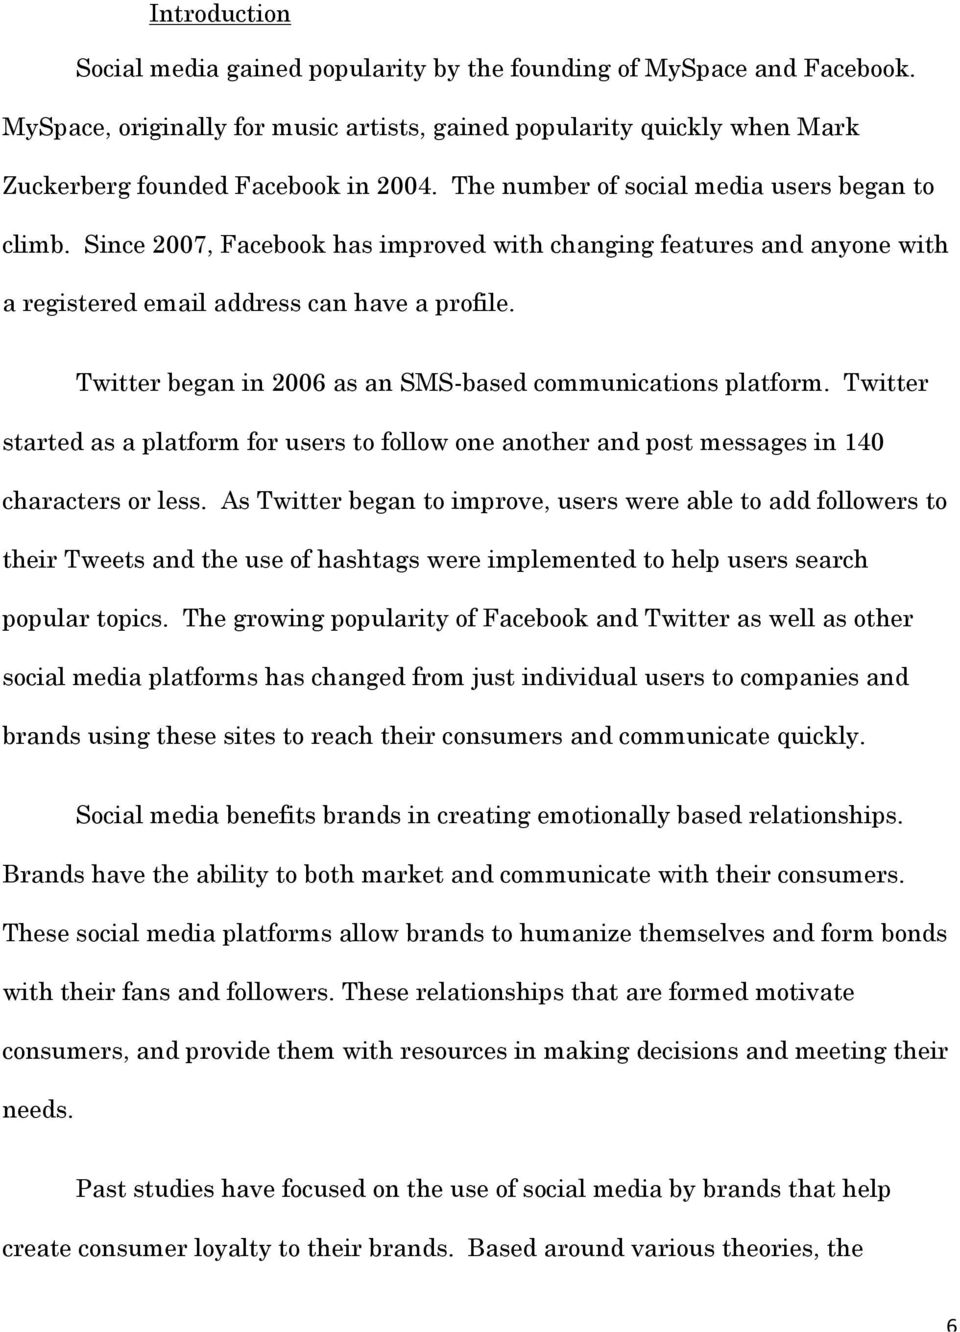 Twitter began in 2006 as an SMS-based communications platform. Twitter started as a platform for users to follow one another and post messages in 140 characters or less.